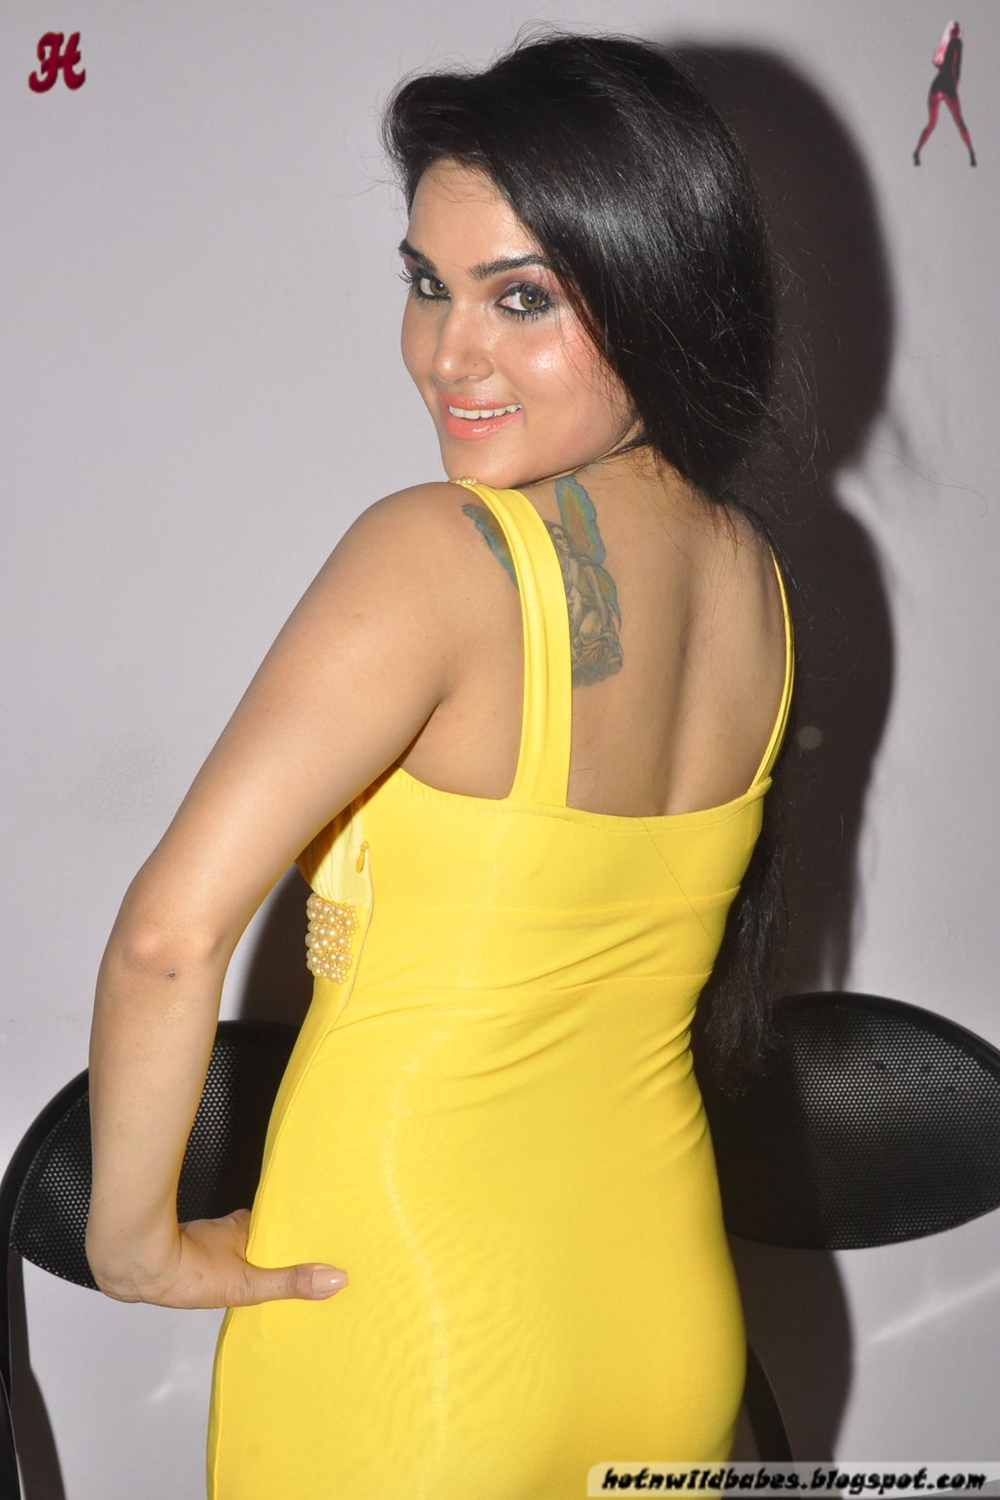 Kavya Singh Exposing Her Boobs In A Yellow Gown - Hot N -2875